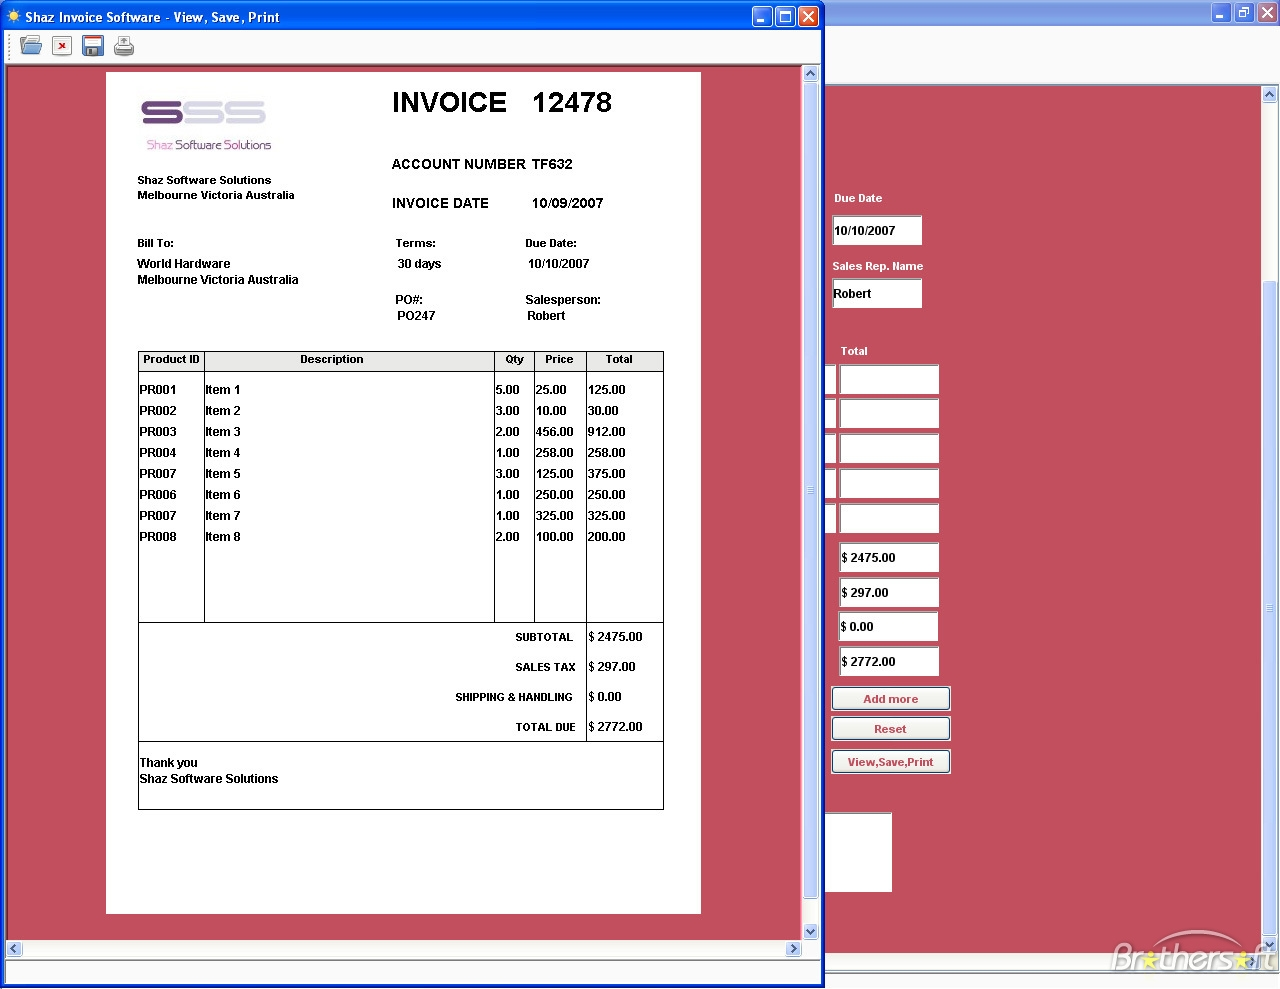 download free shaz invoice software shaz invoice software 100 download invoice software